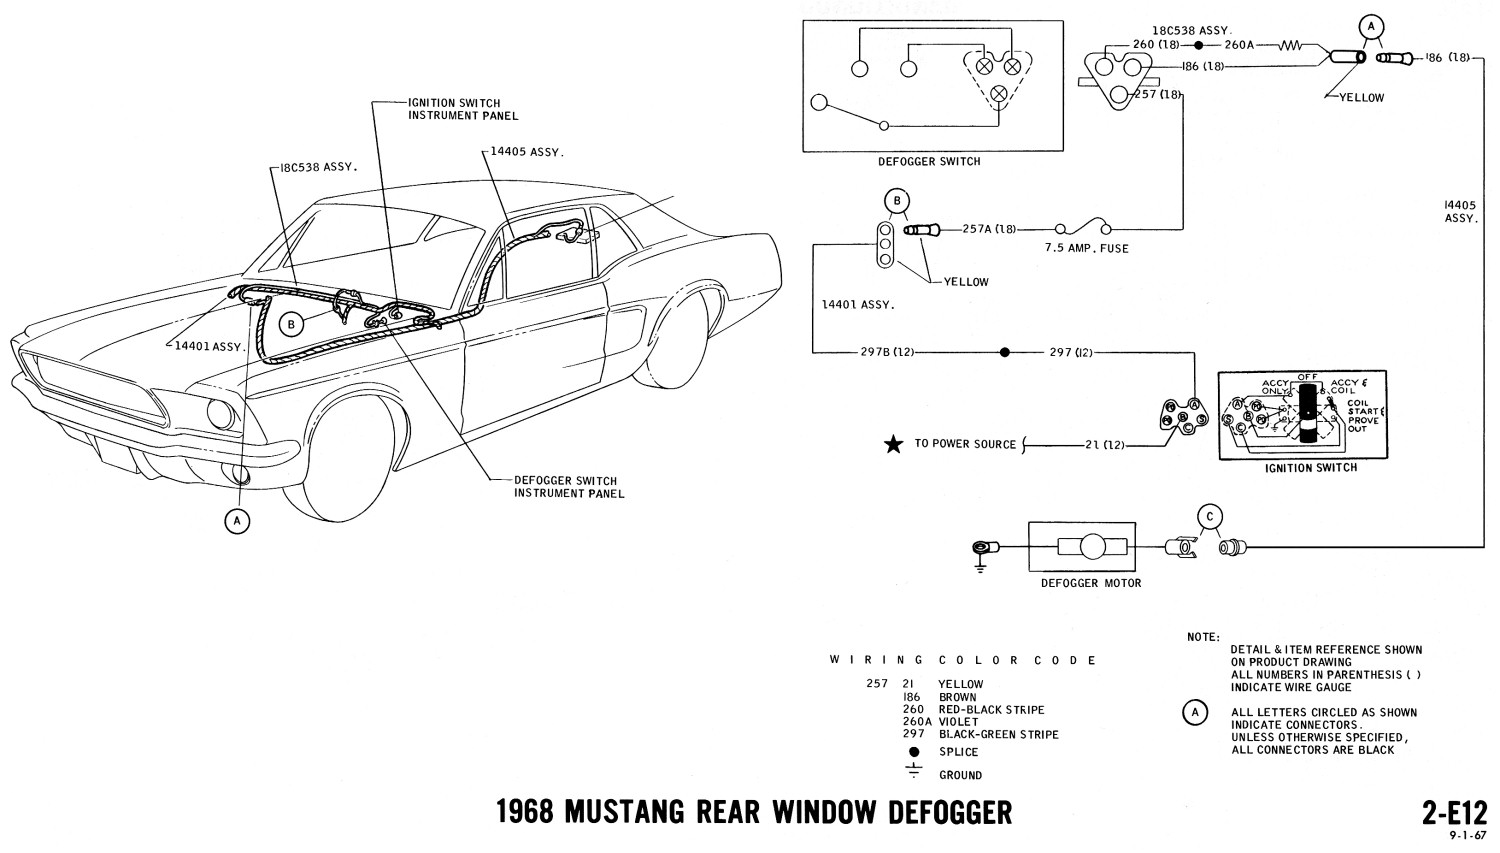 1968 Mustang Wiring Diagrams Evolving Software Diagram Free Defogger